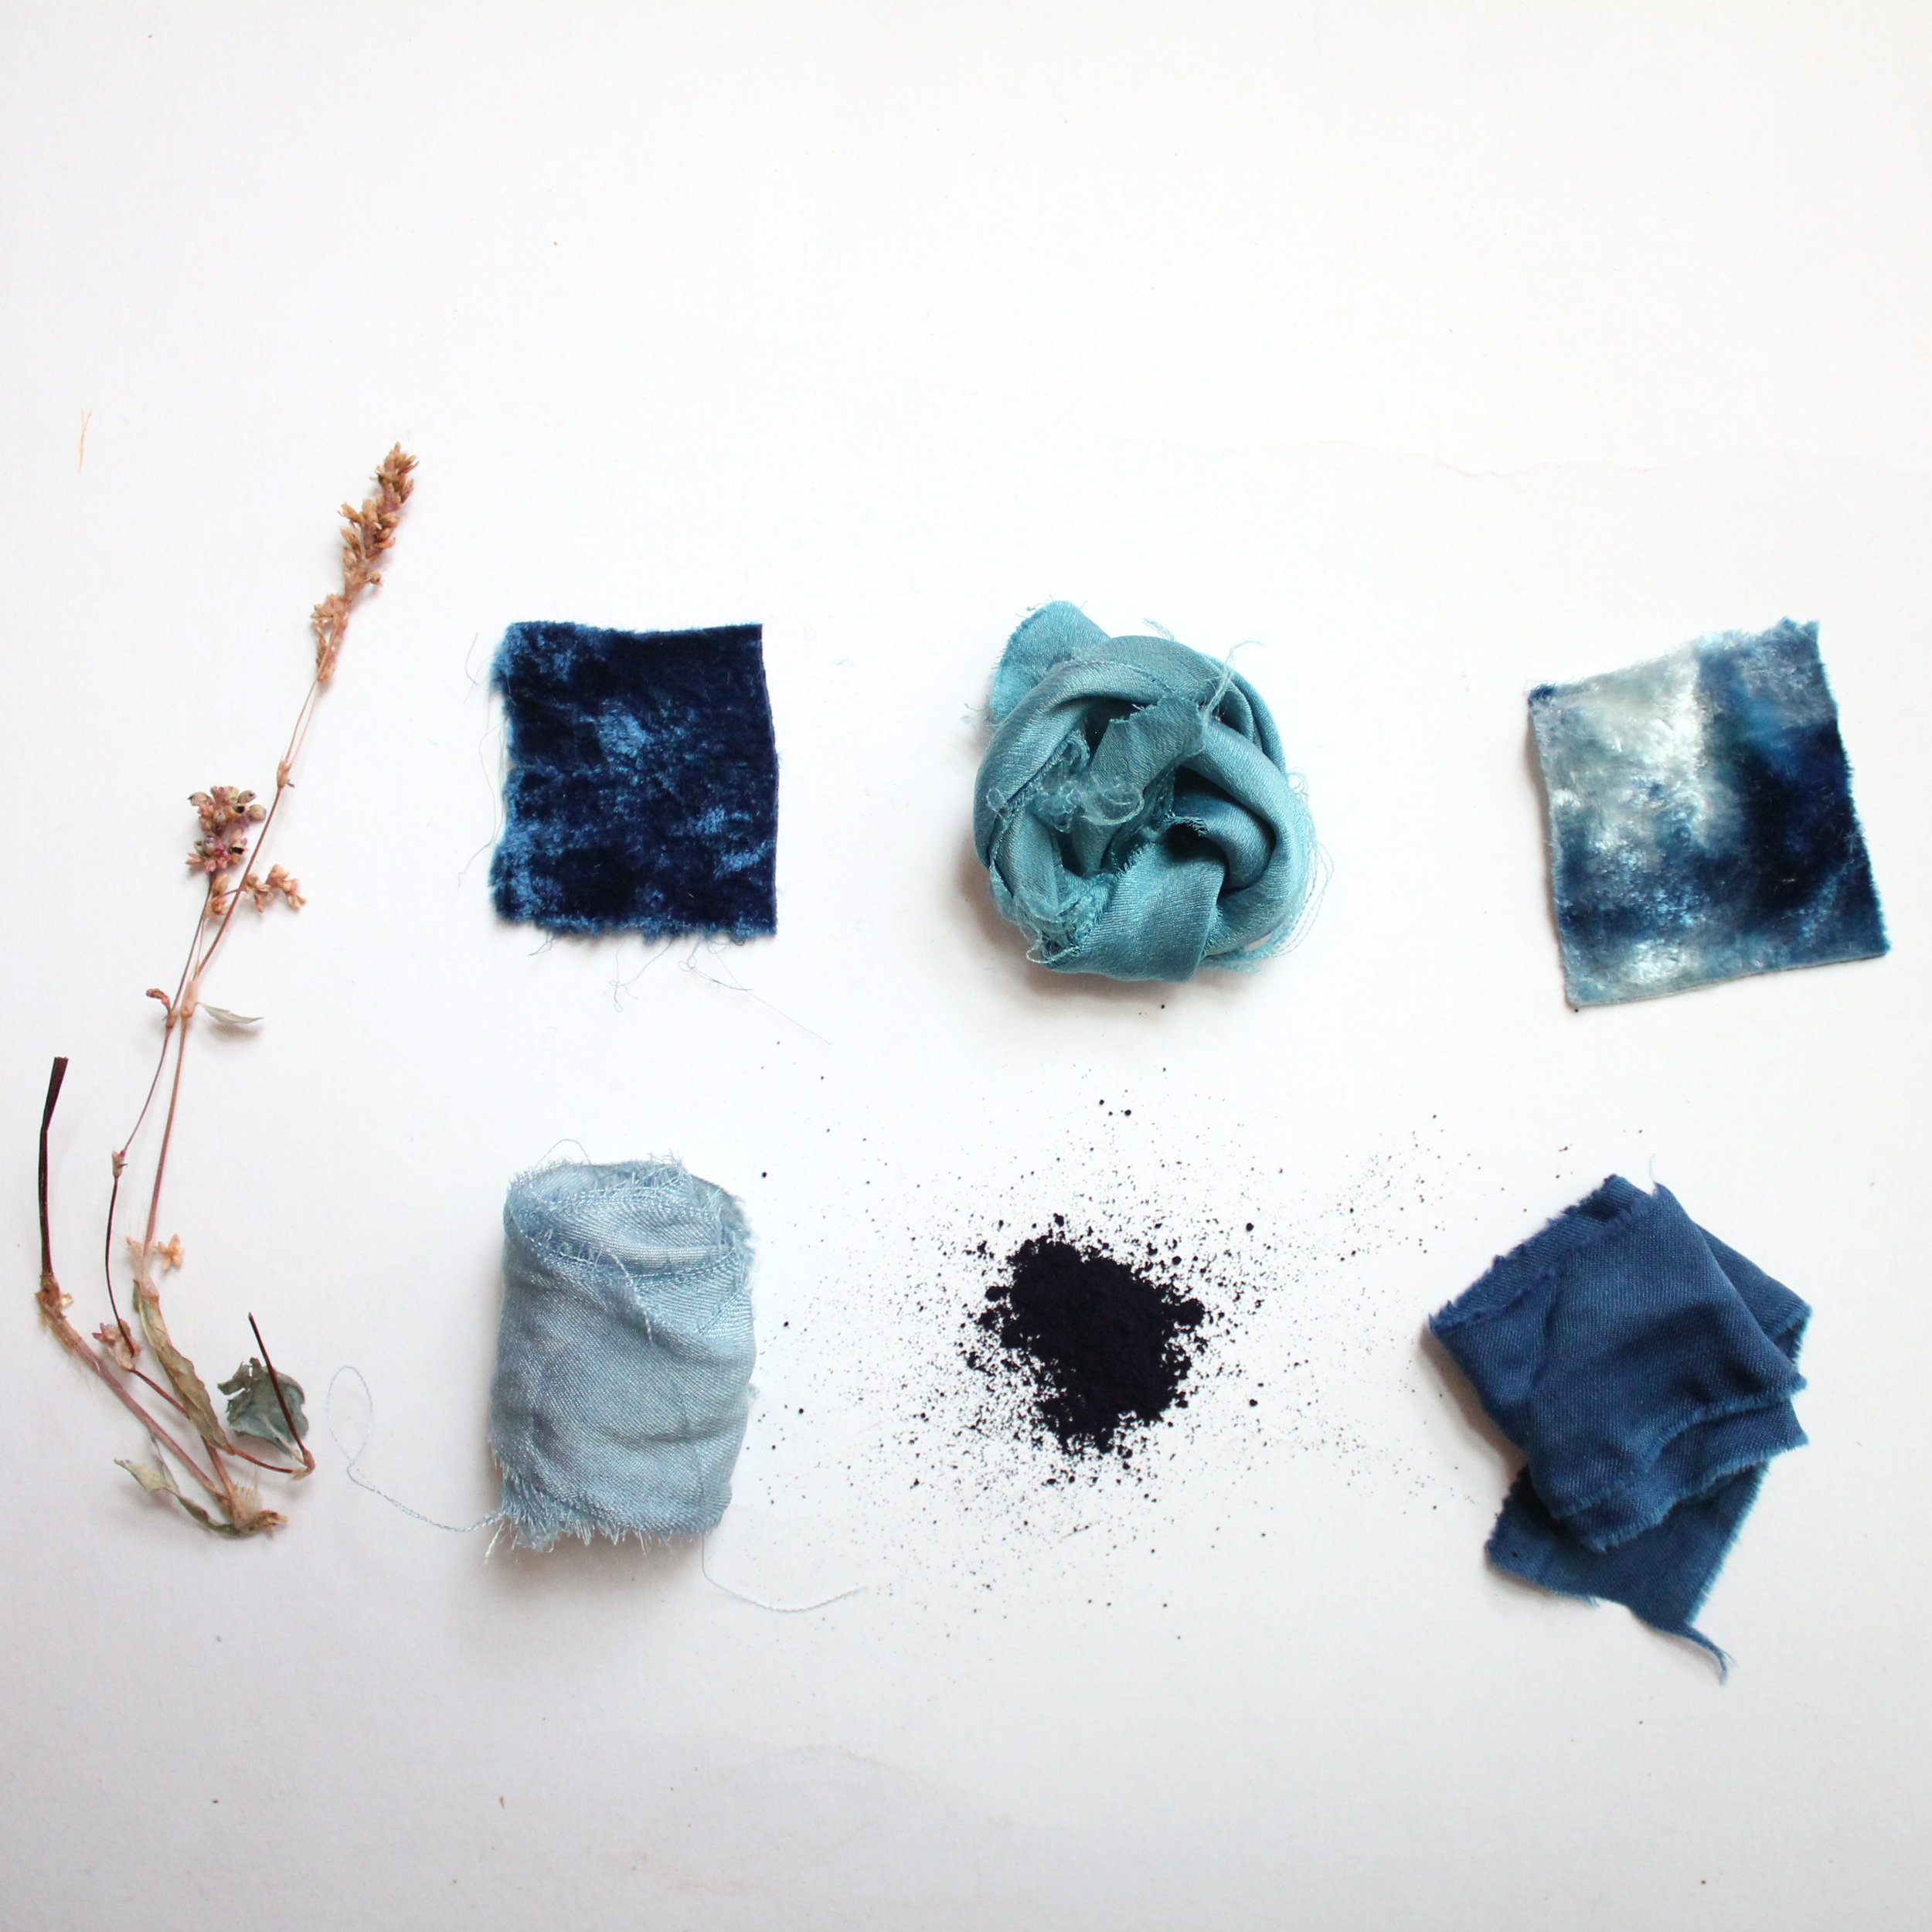 Indigo  Indigo dye comes from the leaf of the Indigo plant. It is unique from all other natural dyes for its color and the process by which the dye is prepared.